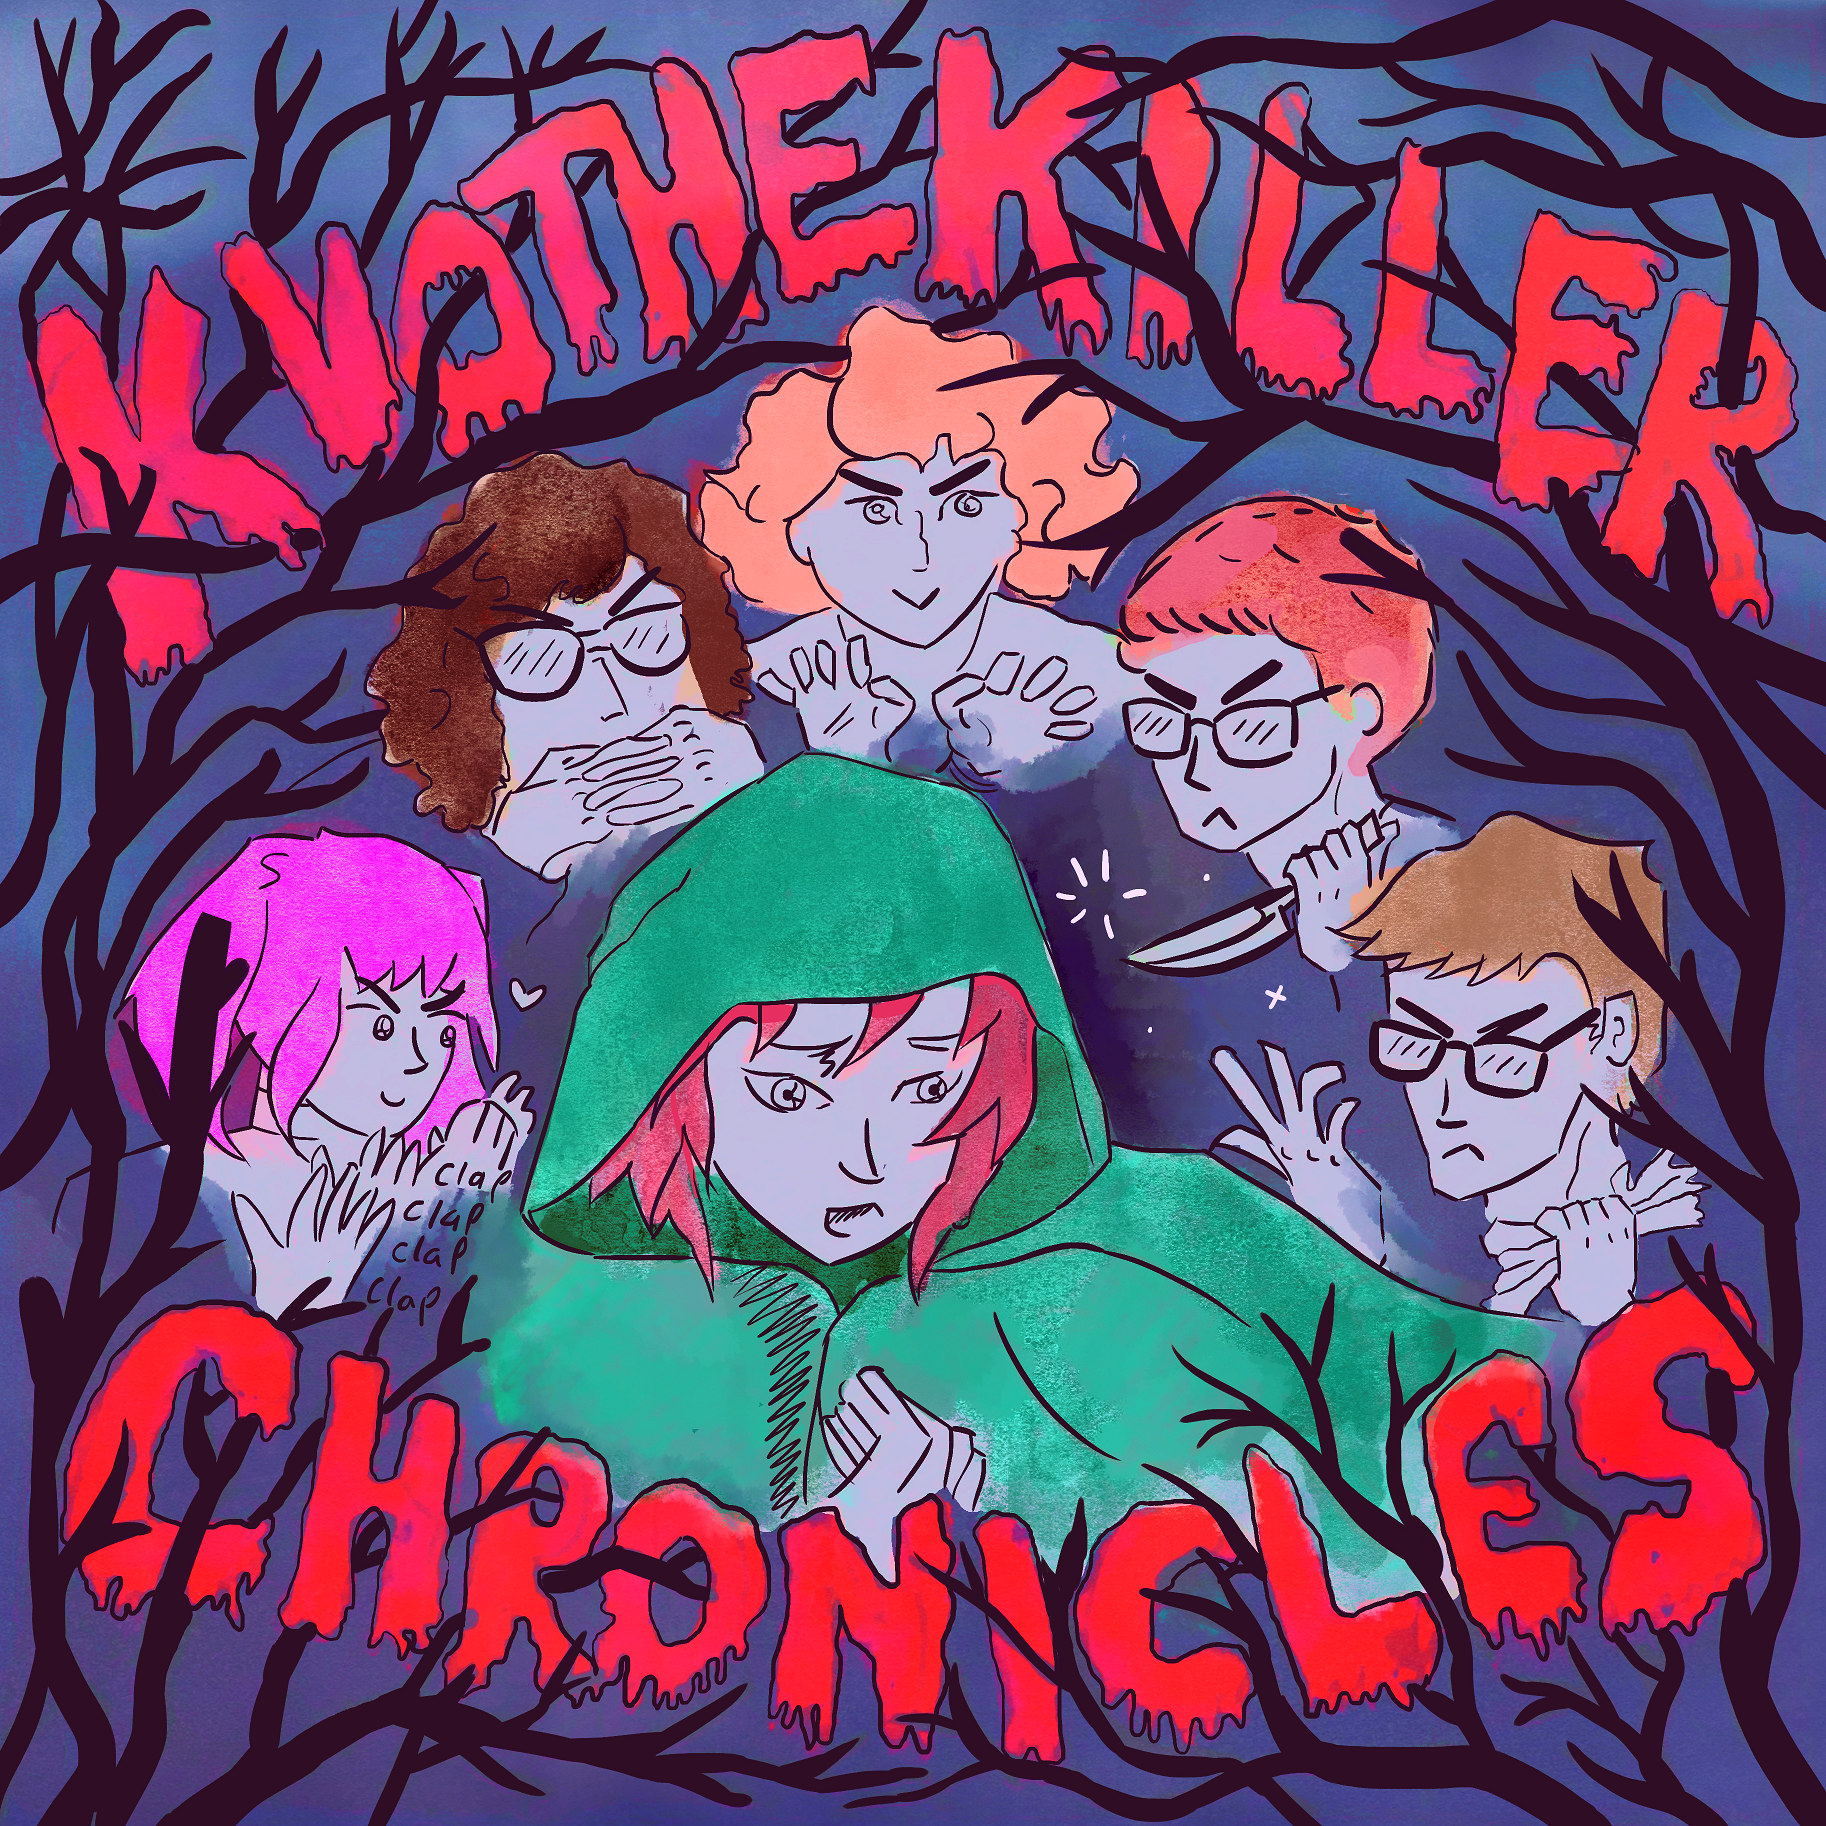 Kvothekiller Chronicles